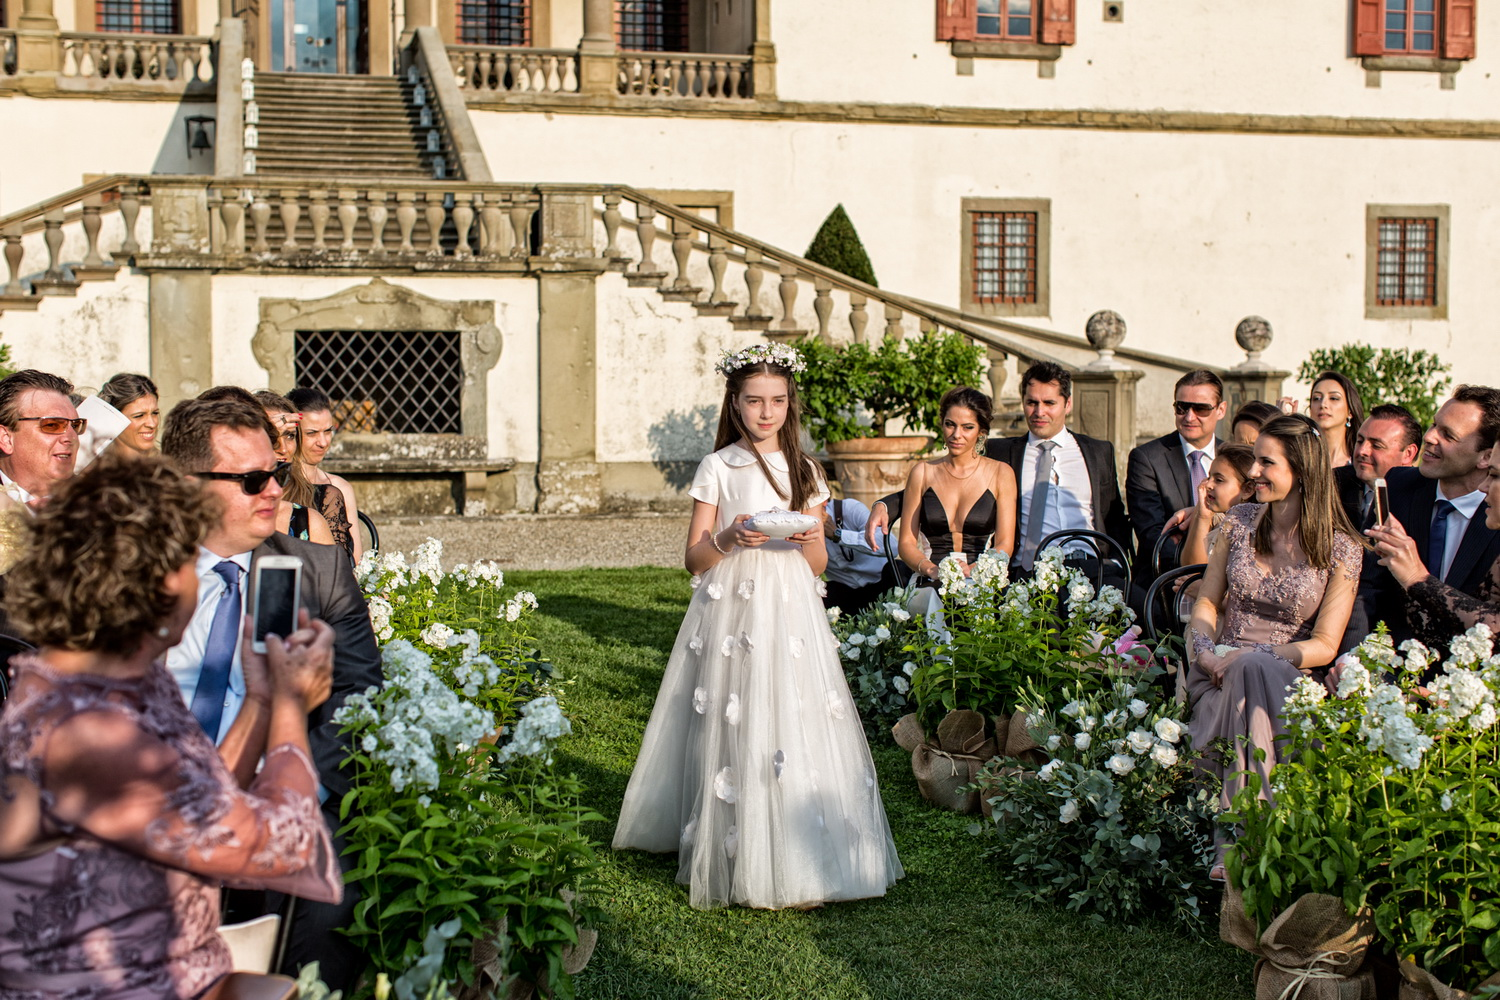 destination wedding na toscana | caroline e fernando Destination Wedding na Toscana | Caroline e Fernando marco zammarchi destination wedding 28